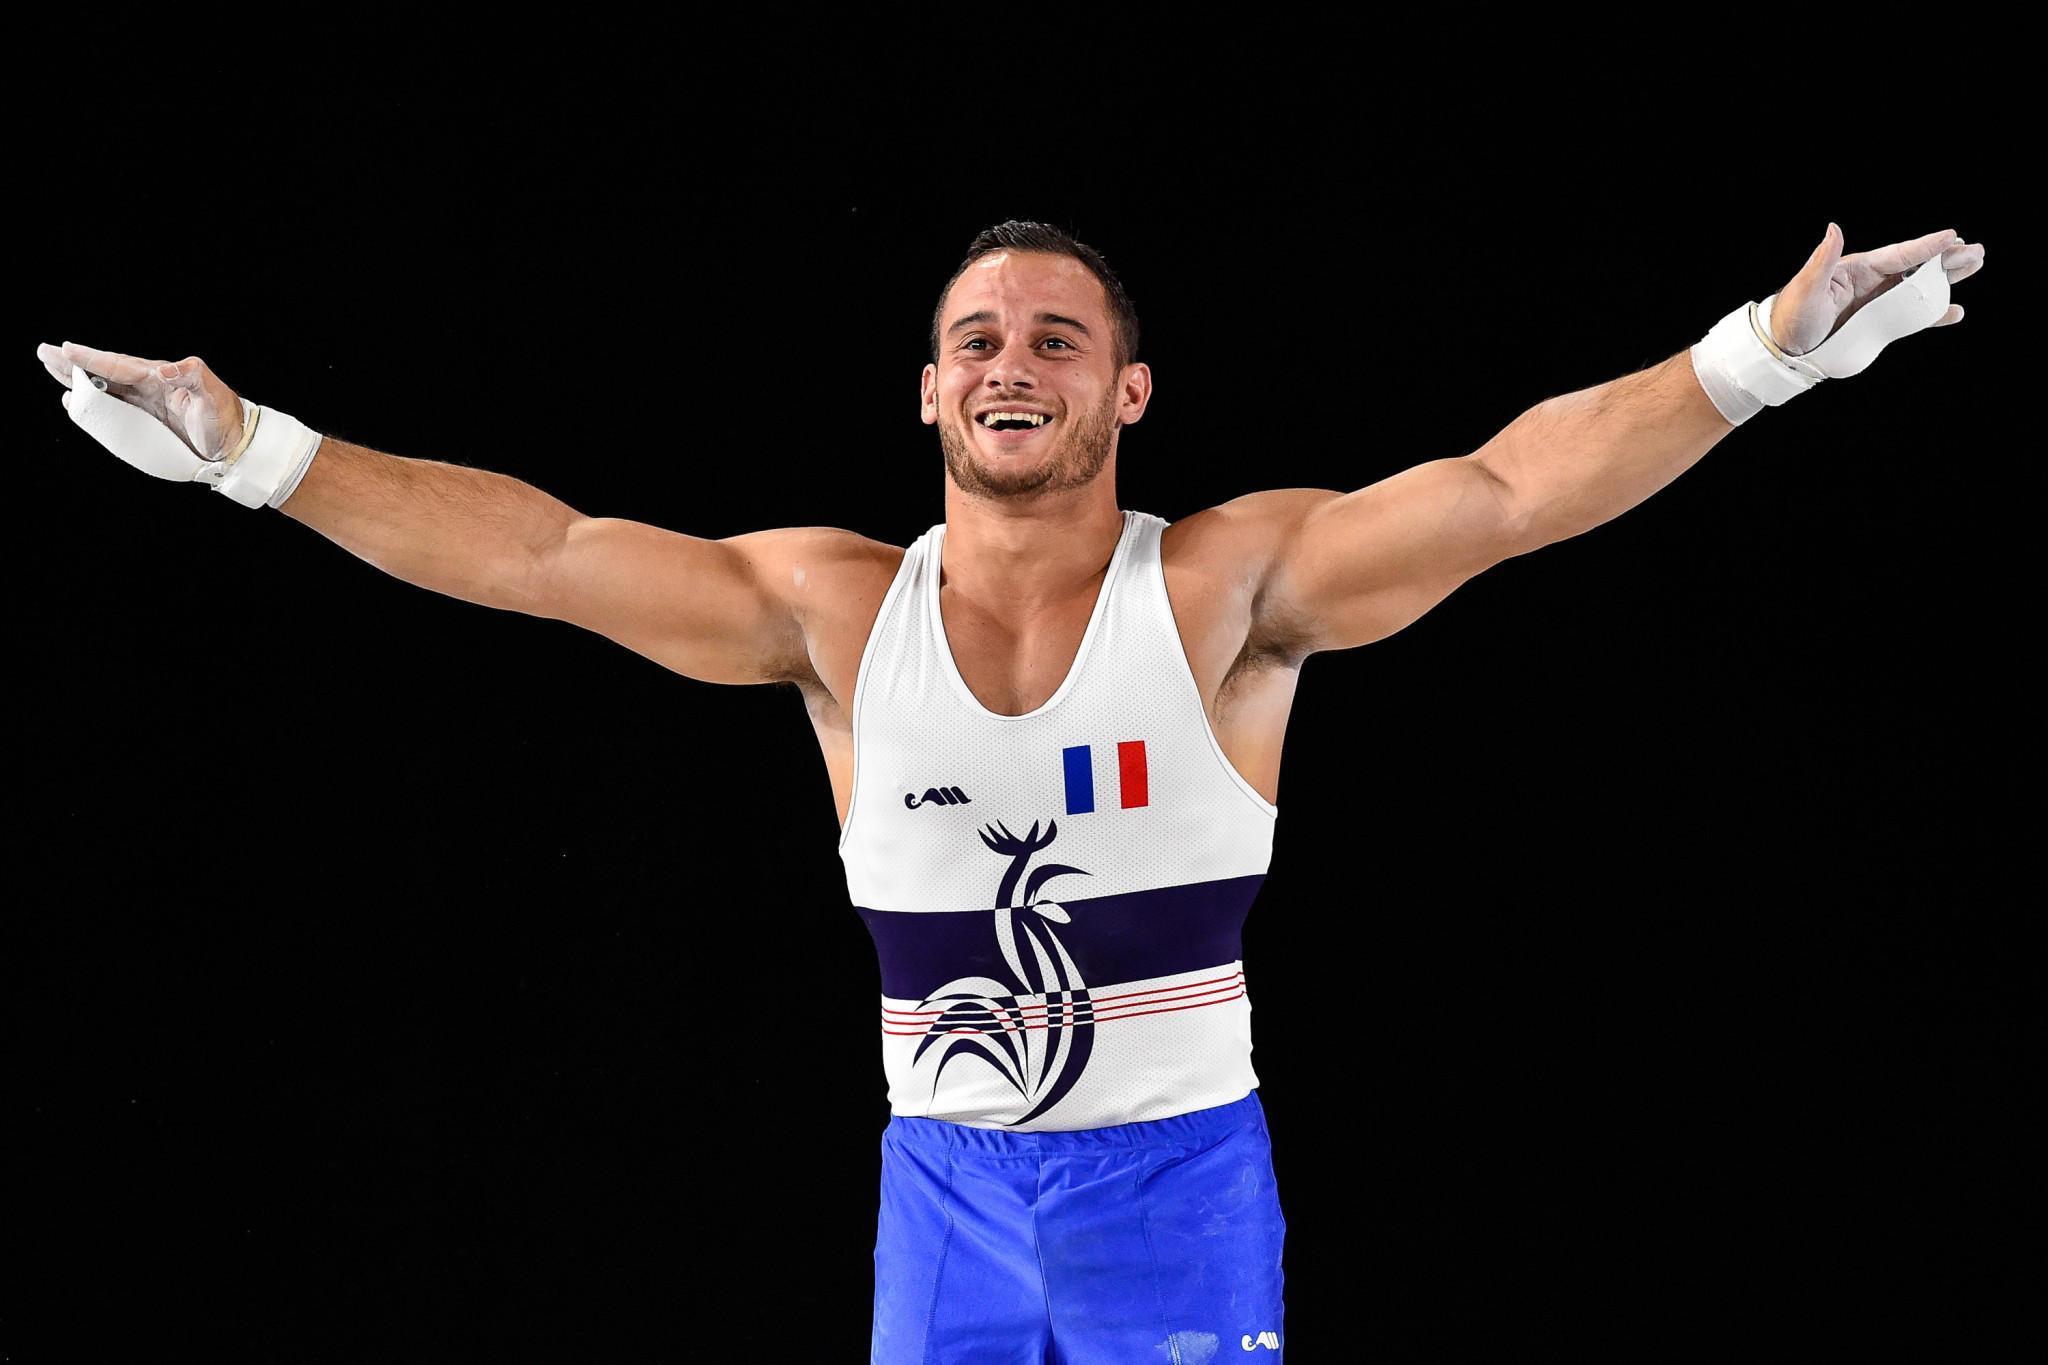 French gymnast Samir Aït Saïd has boldly declared he will end his Olympic Games demons by winning a gold medal at Tokyo 2020 ©Getty Images